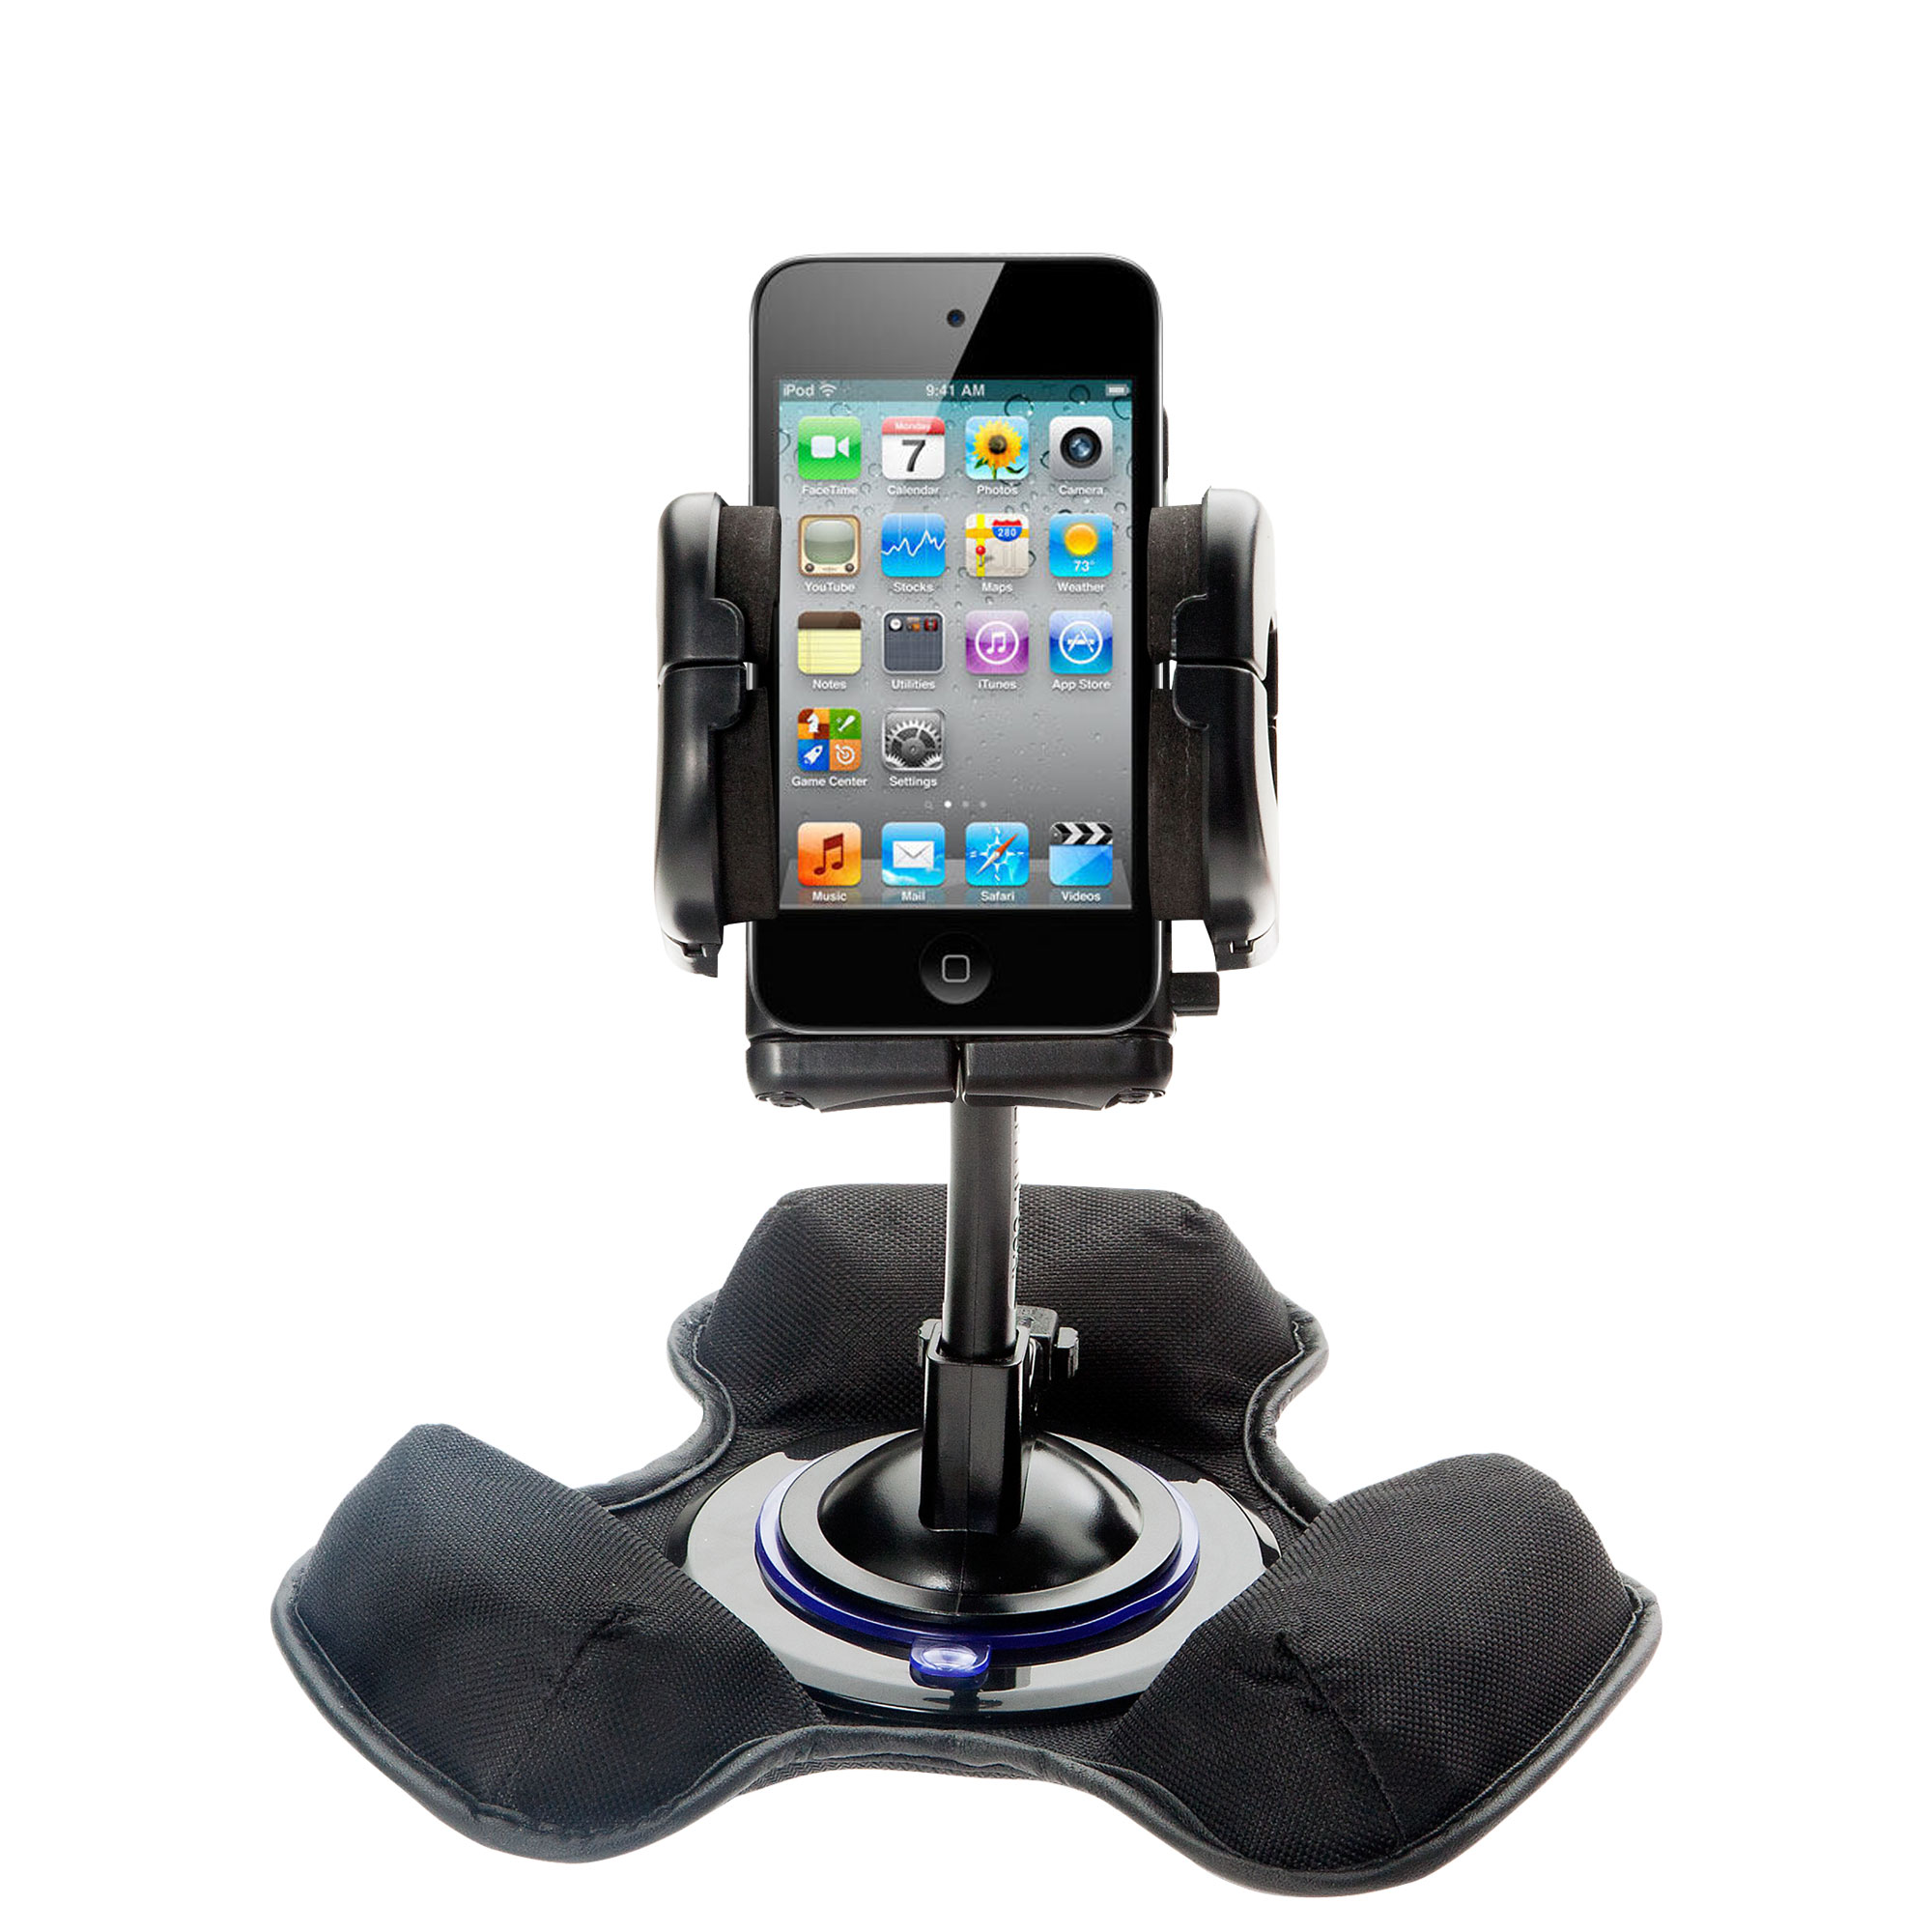 Dash and Windshield Holder compatible with the Apple iPod touch (4th generation)